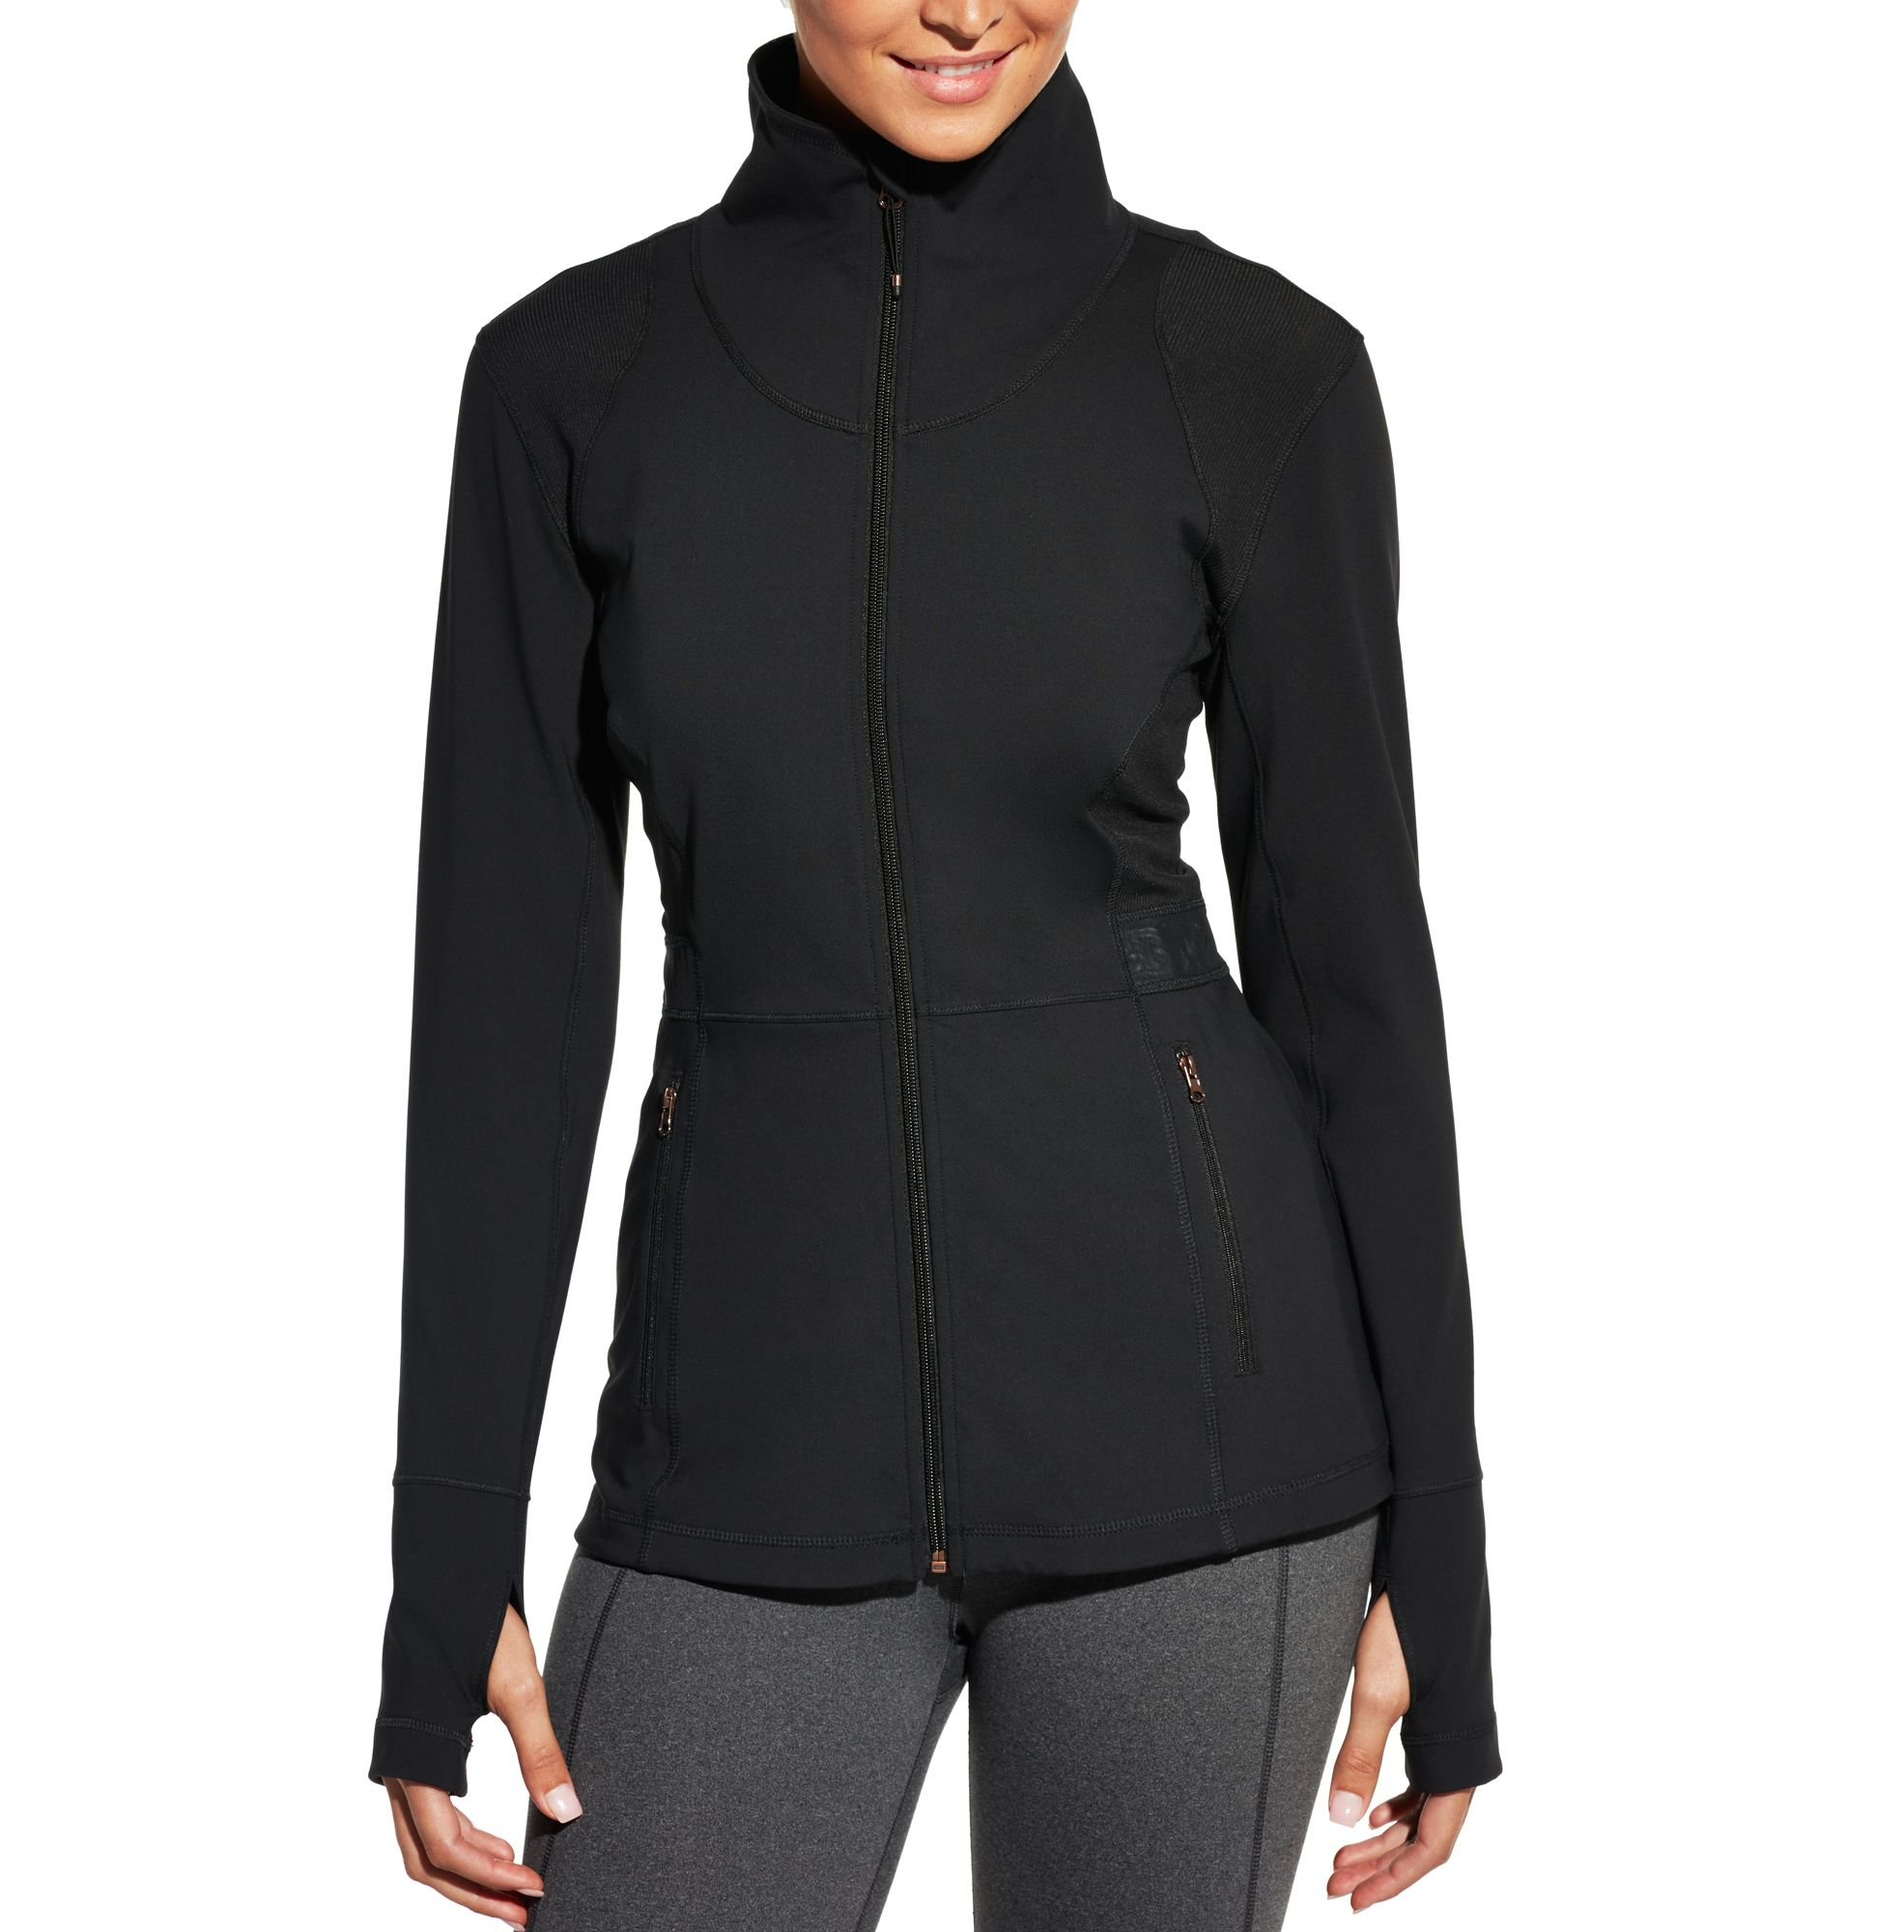 Women's Winter Coats & Jackets | DICK'S Sporting Goods